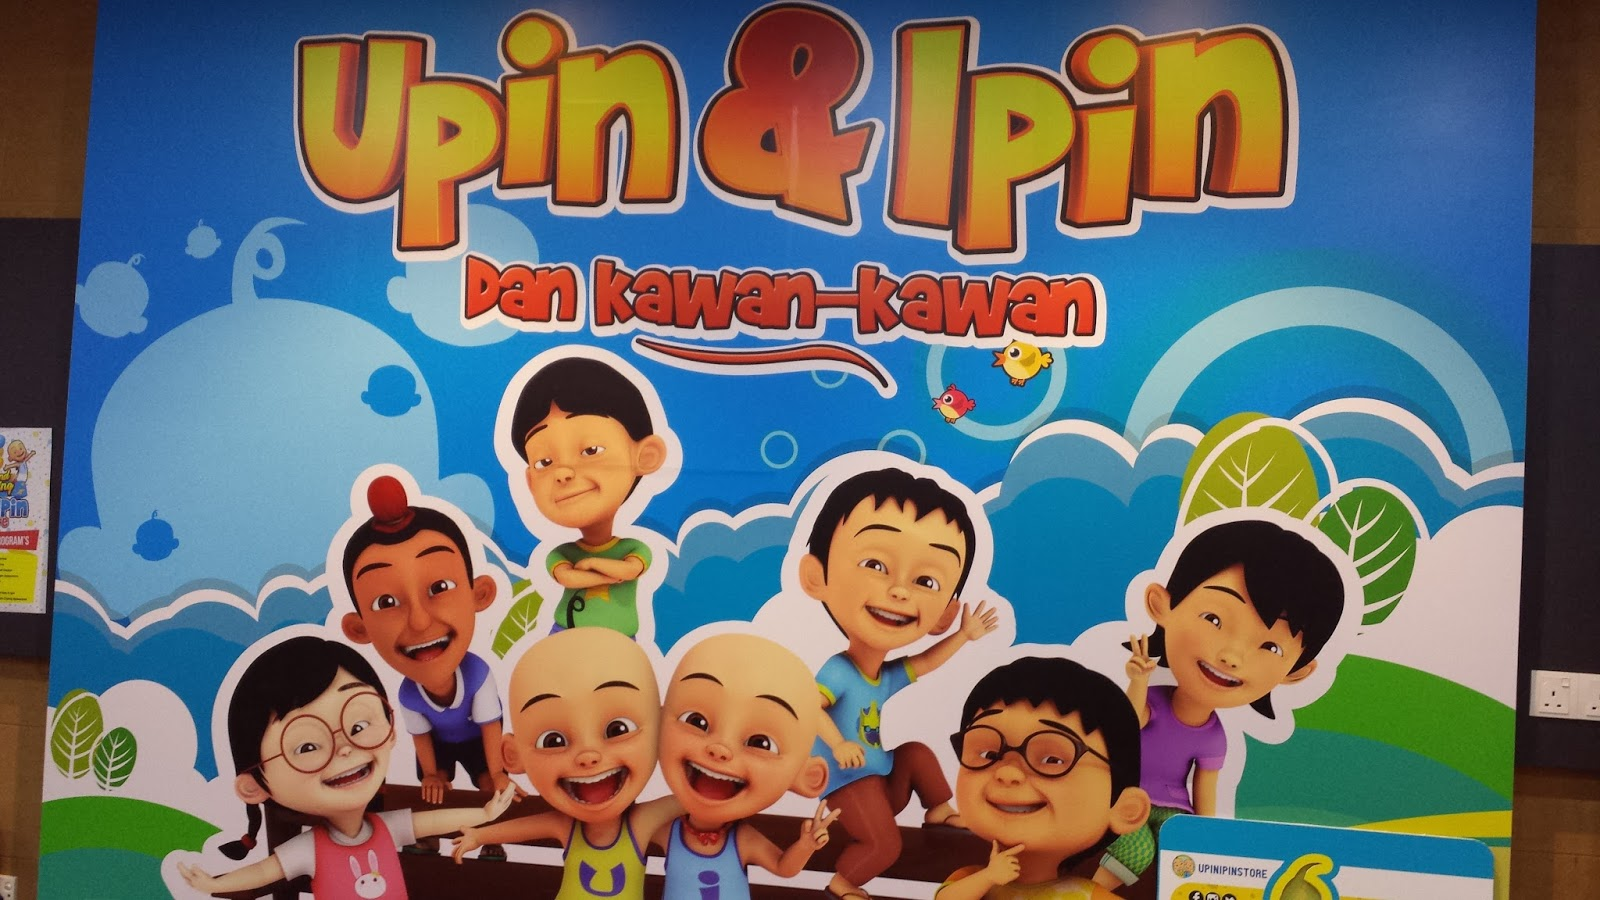 New opening of upin ipin store ampang weekend treat moreover you can get a cup of upin ipin ice cream or a chilled drinks there stopboris Choice Image